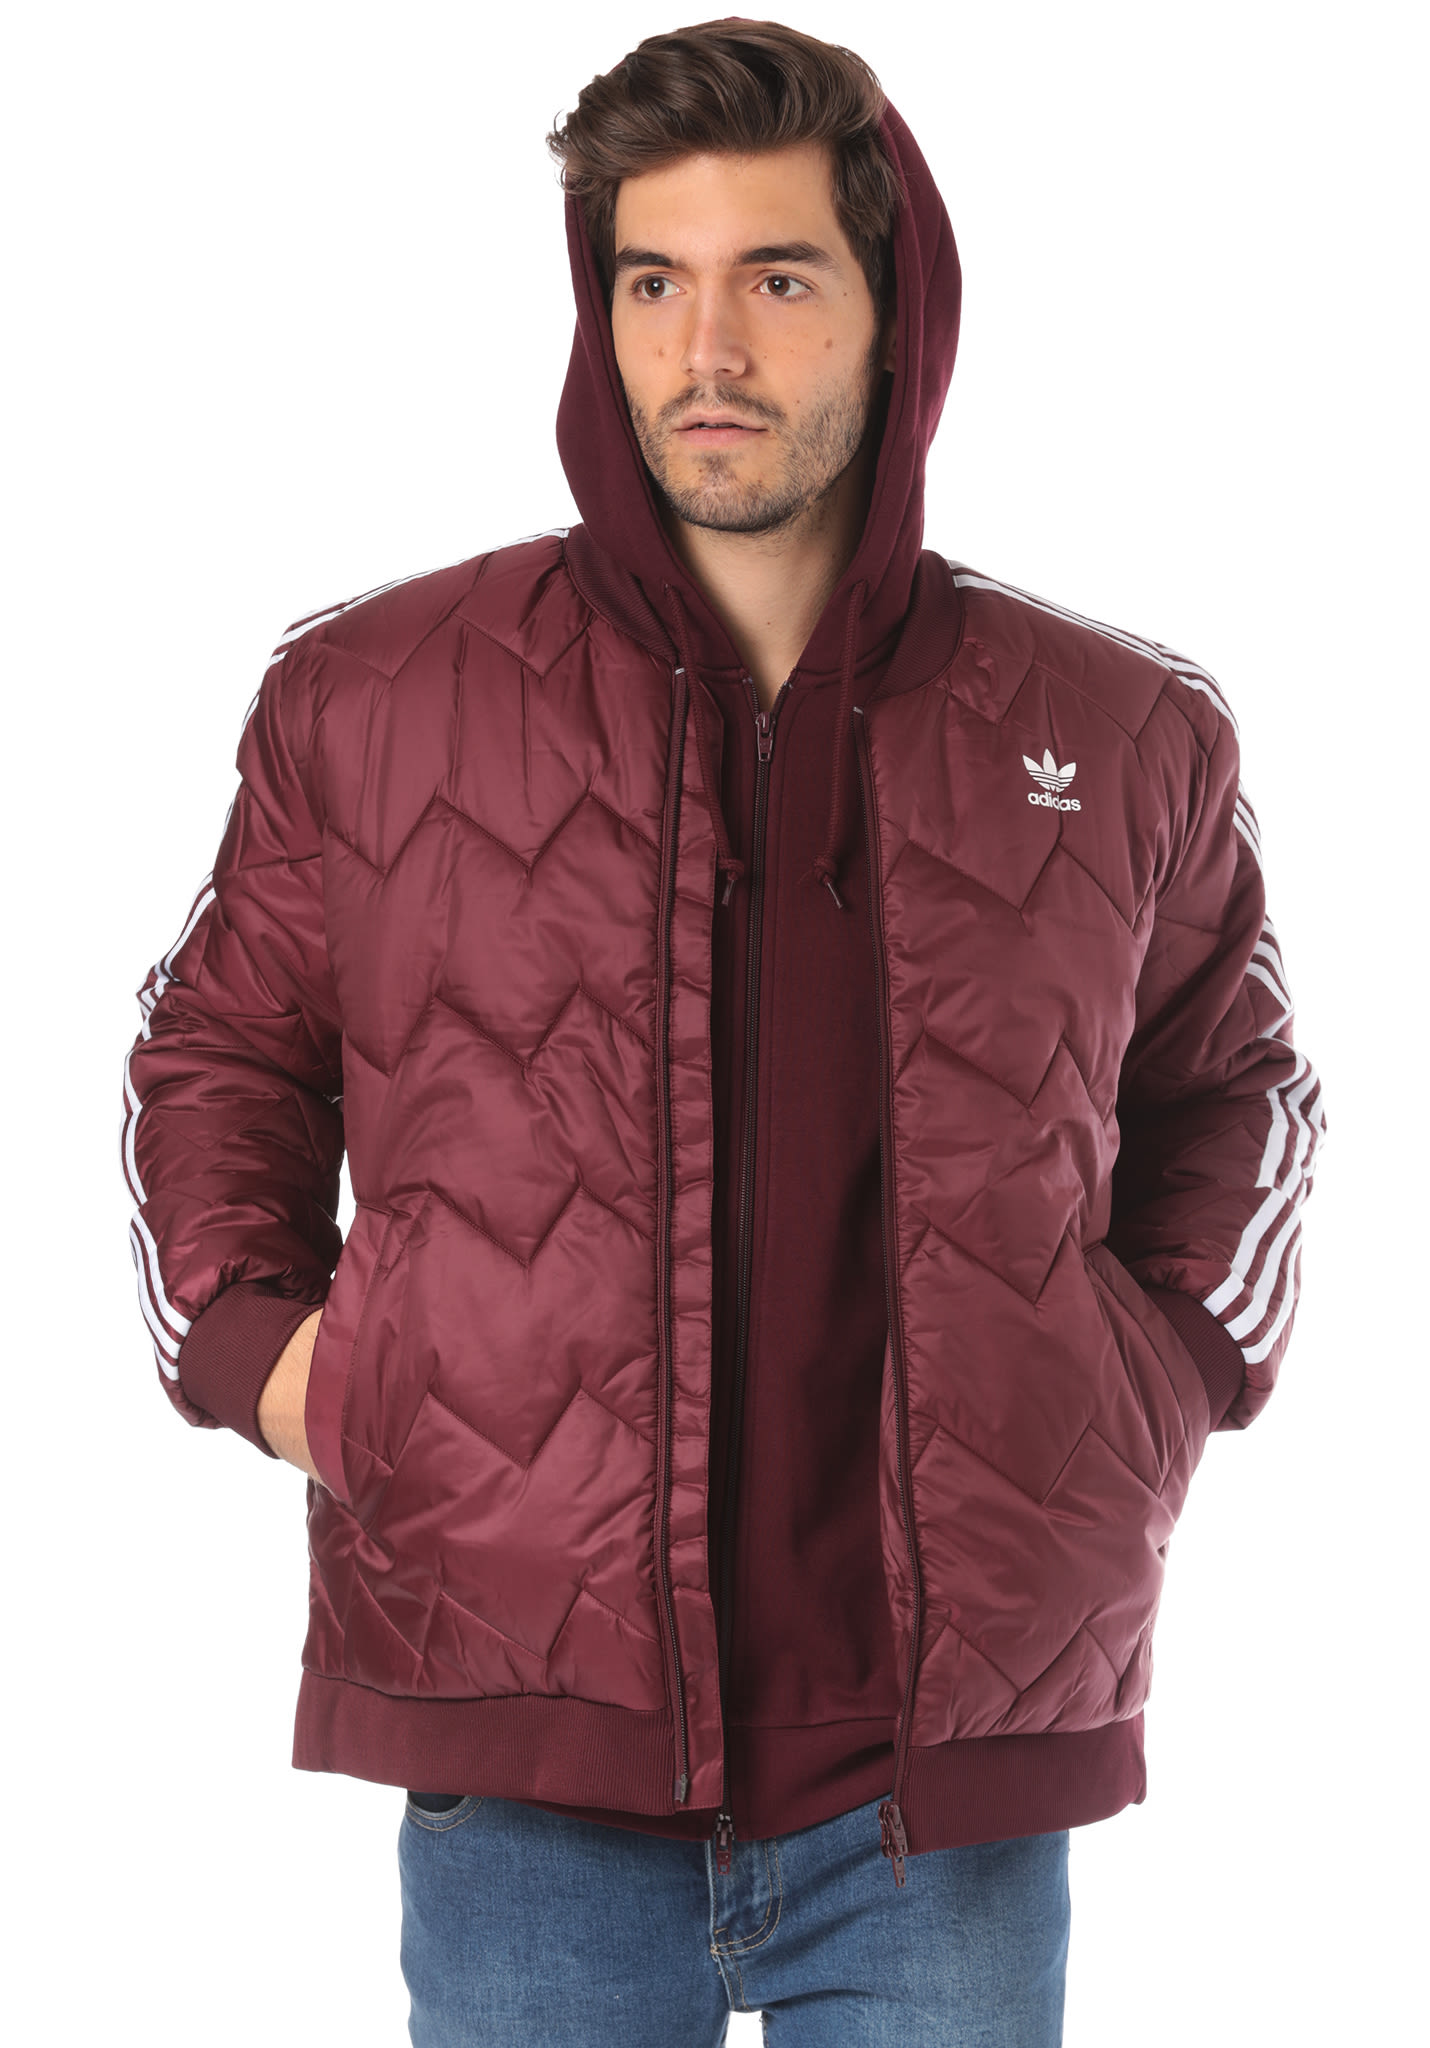 319056128d75 ADIDAS ORIGINALS SST Quilted - Jacket for Men - Red - Planet Sports